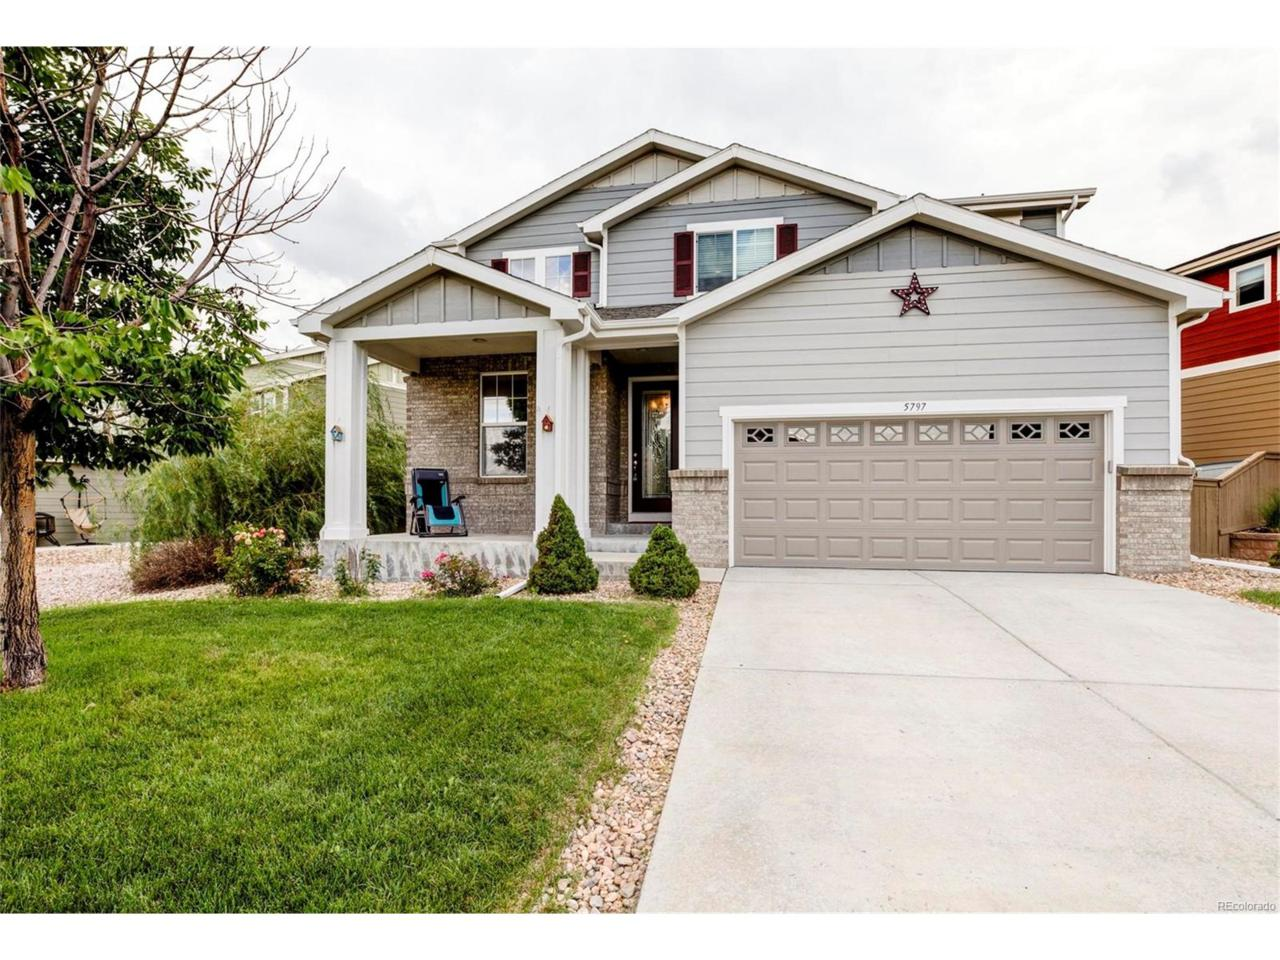 5797 Raleigh Circle, Castle Rock, CO 80104 (MLS #3165049) :: 8z Real Estate